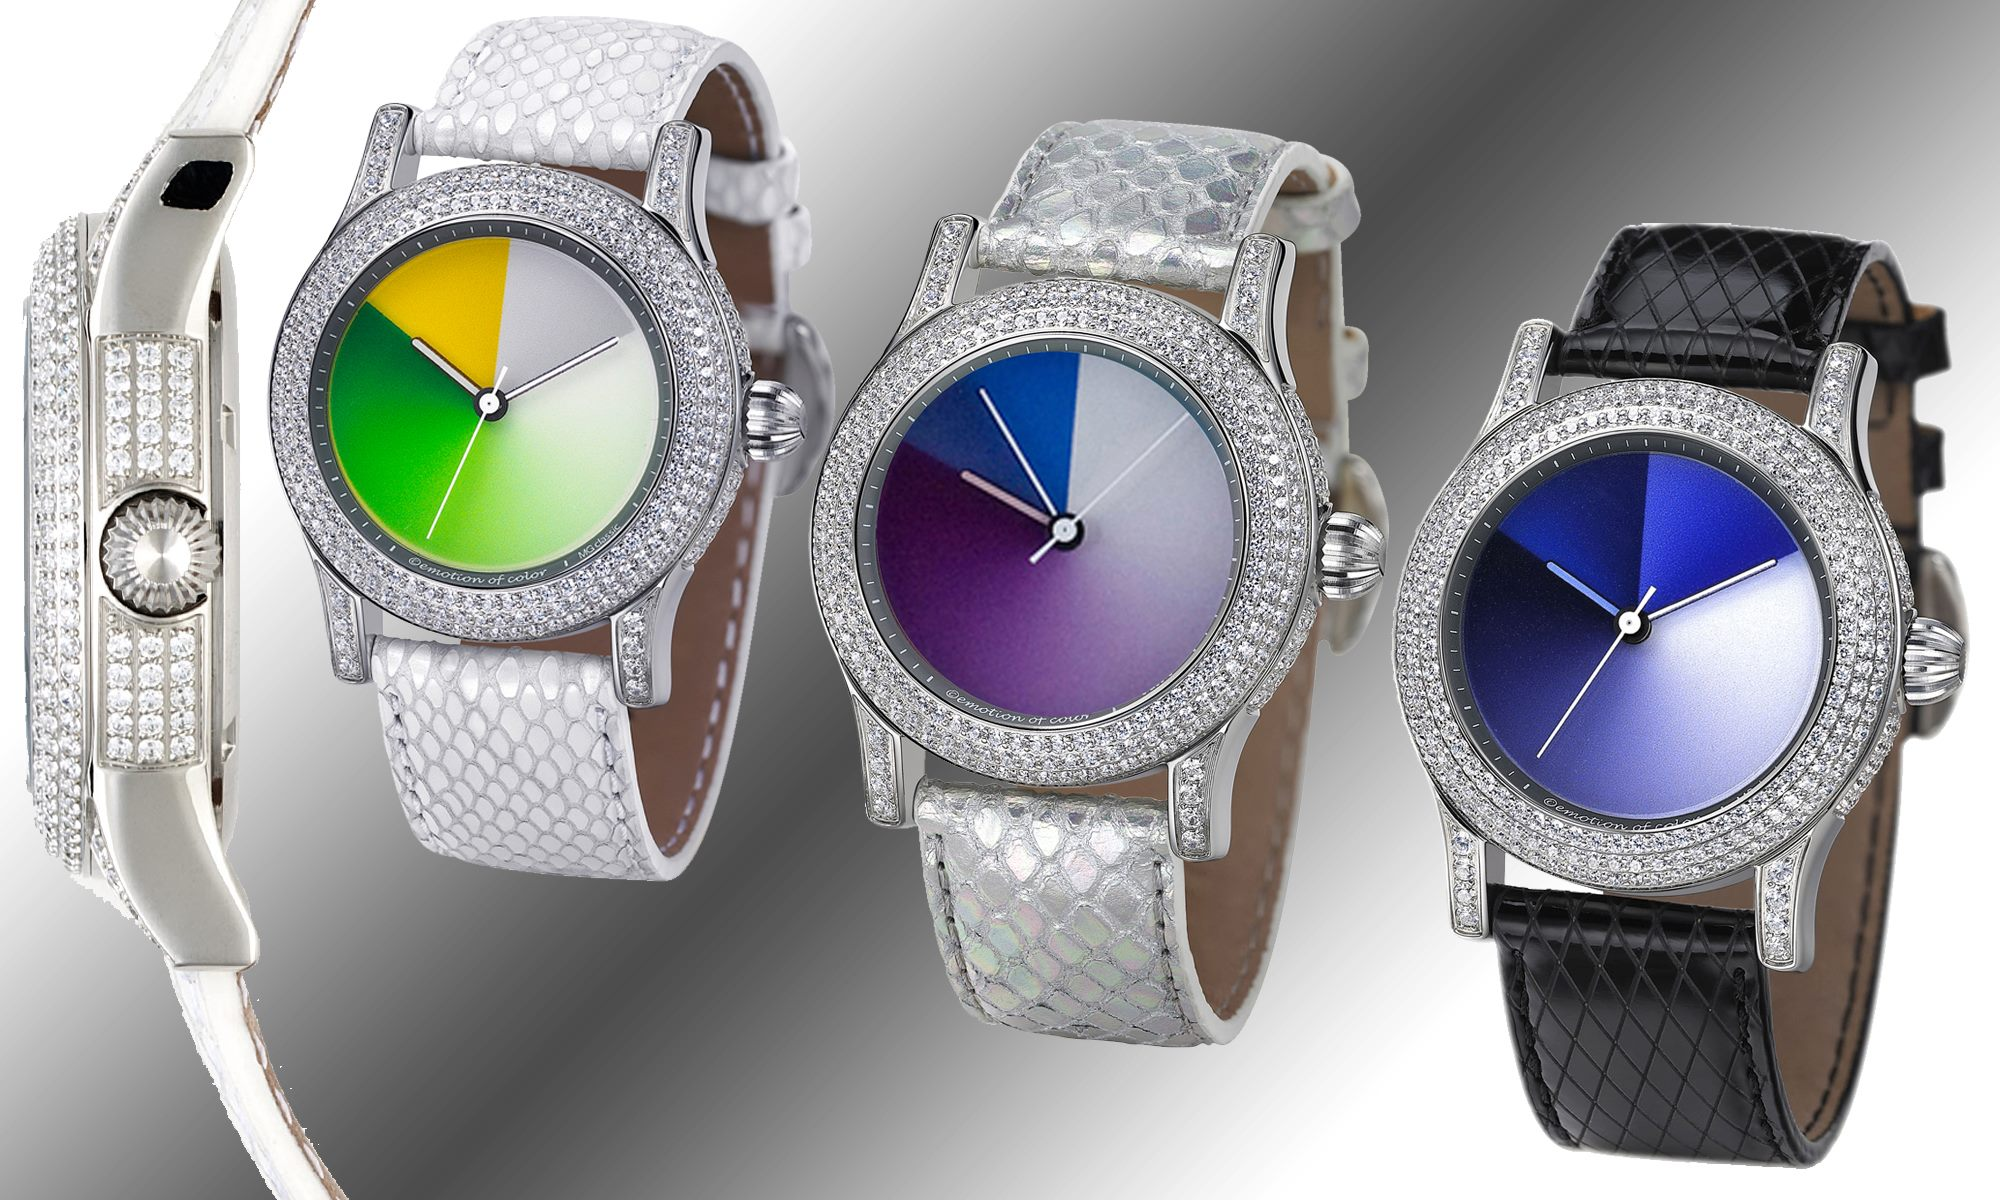 monochrome classic rainbow watch crystal color changing colours